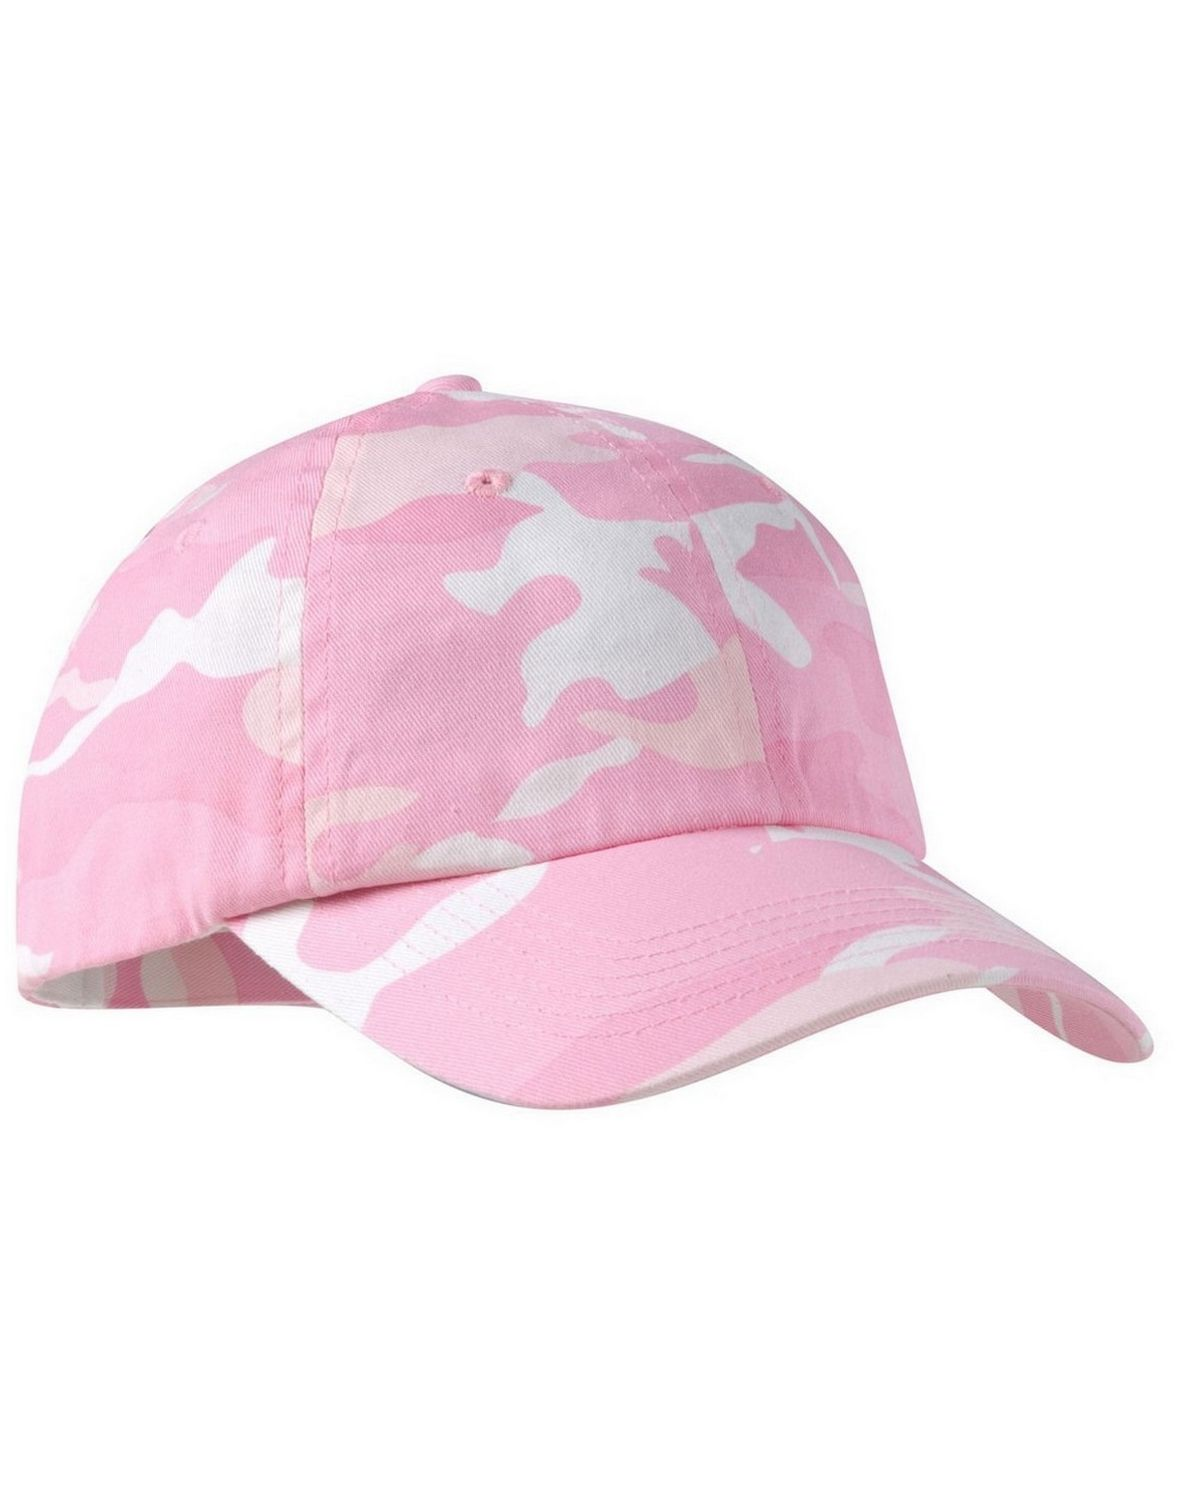 Port Authority C851 Camouflage Cap - Pink Camo - One Size from Port Authority